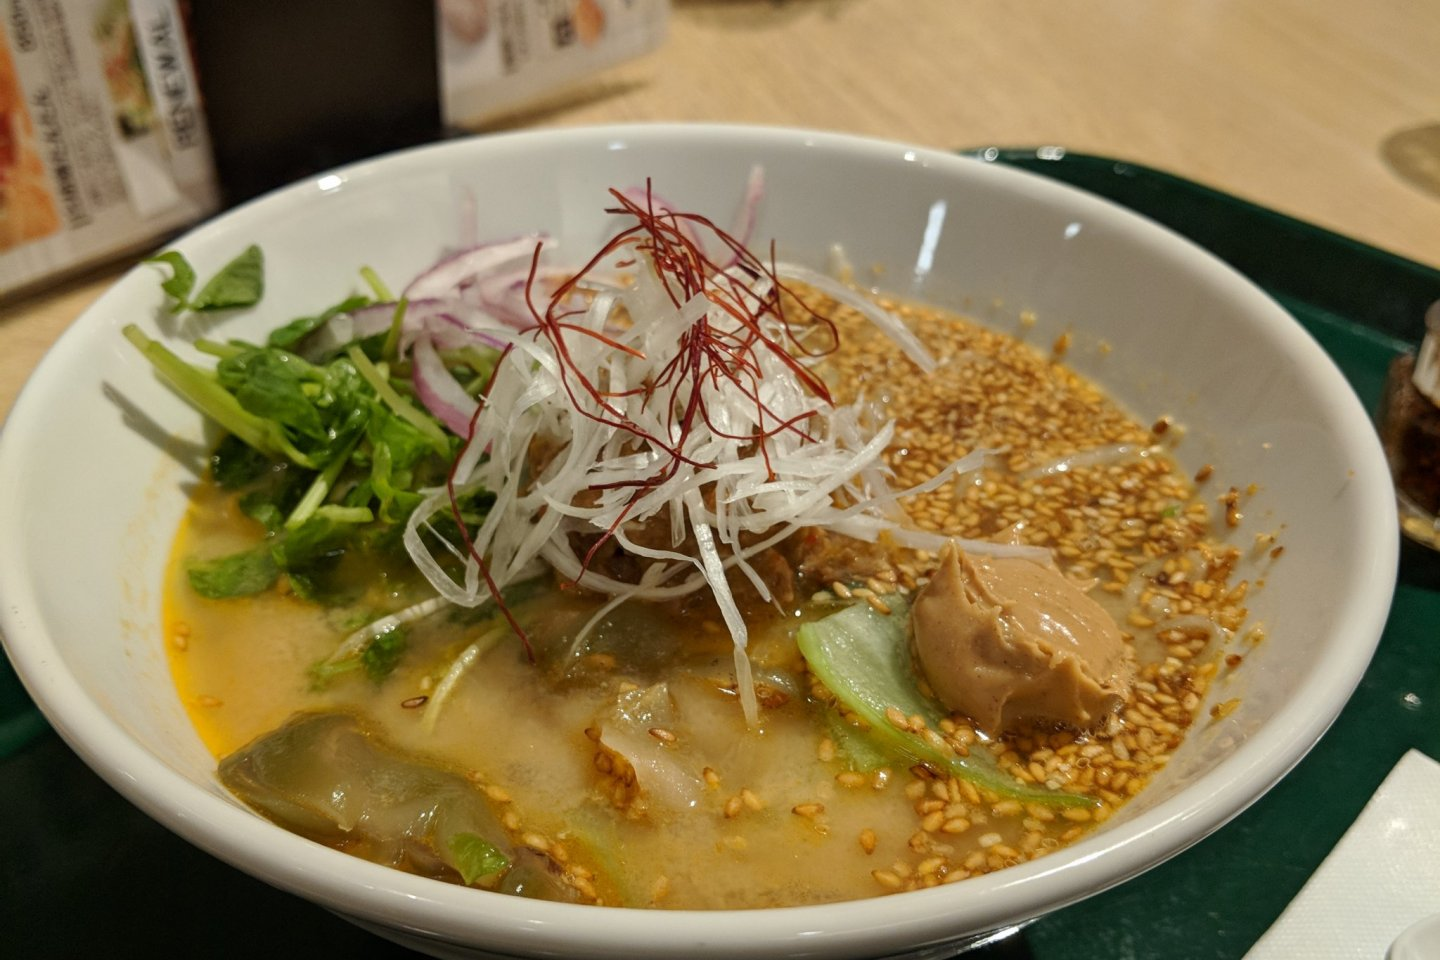 The tantan noodles are the signature dish here